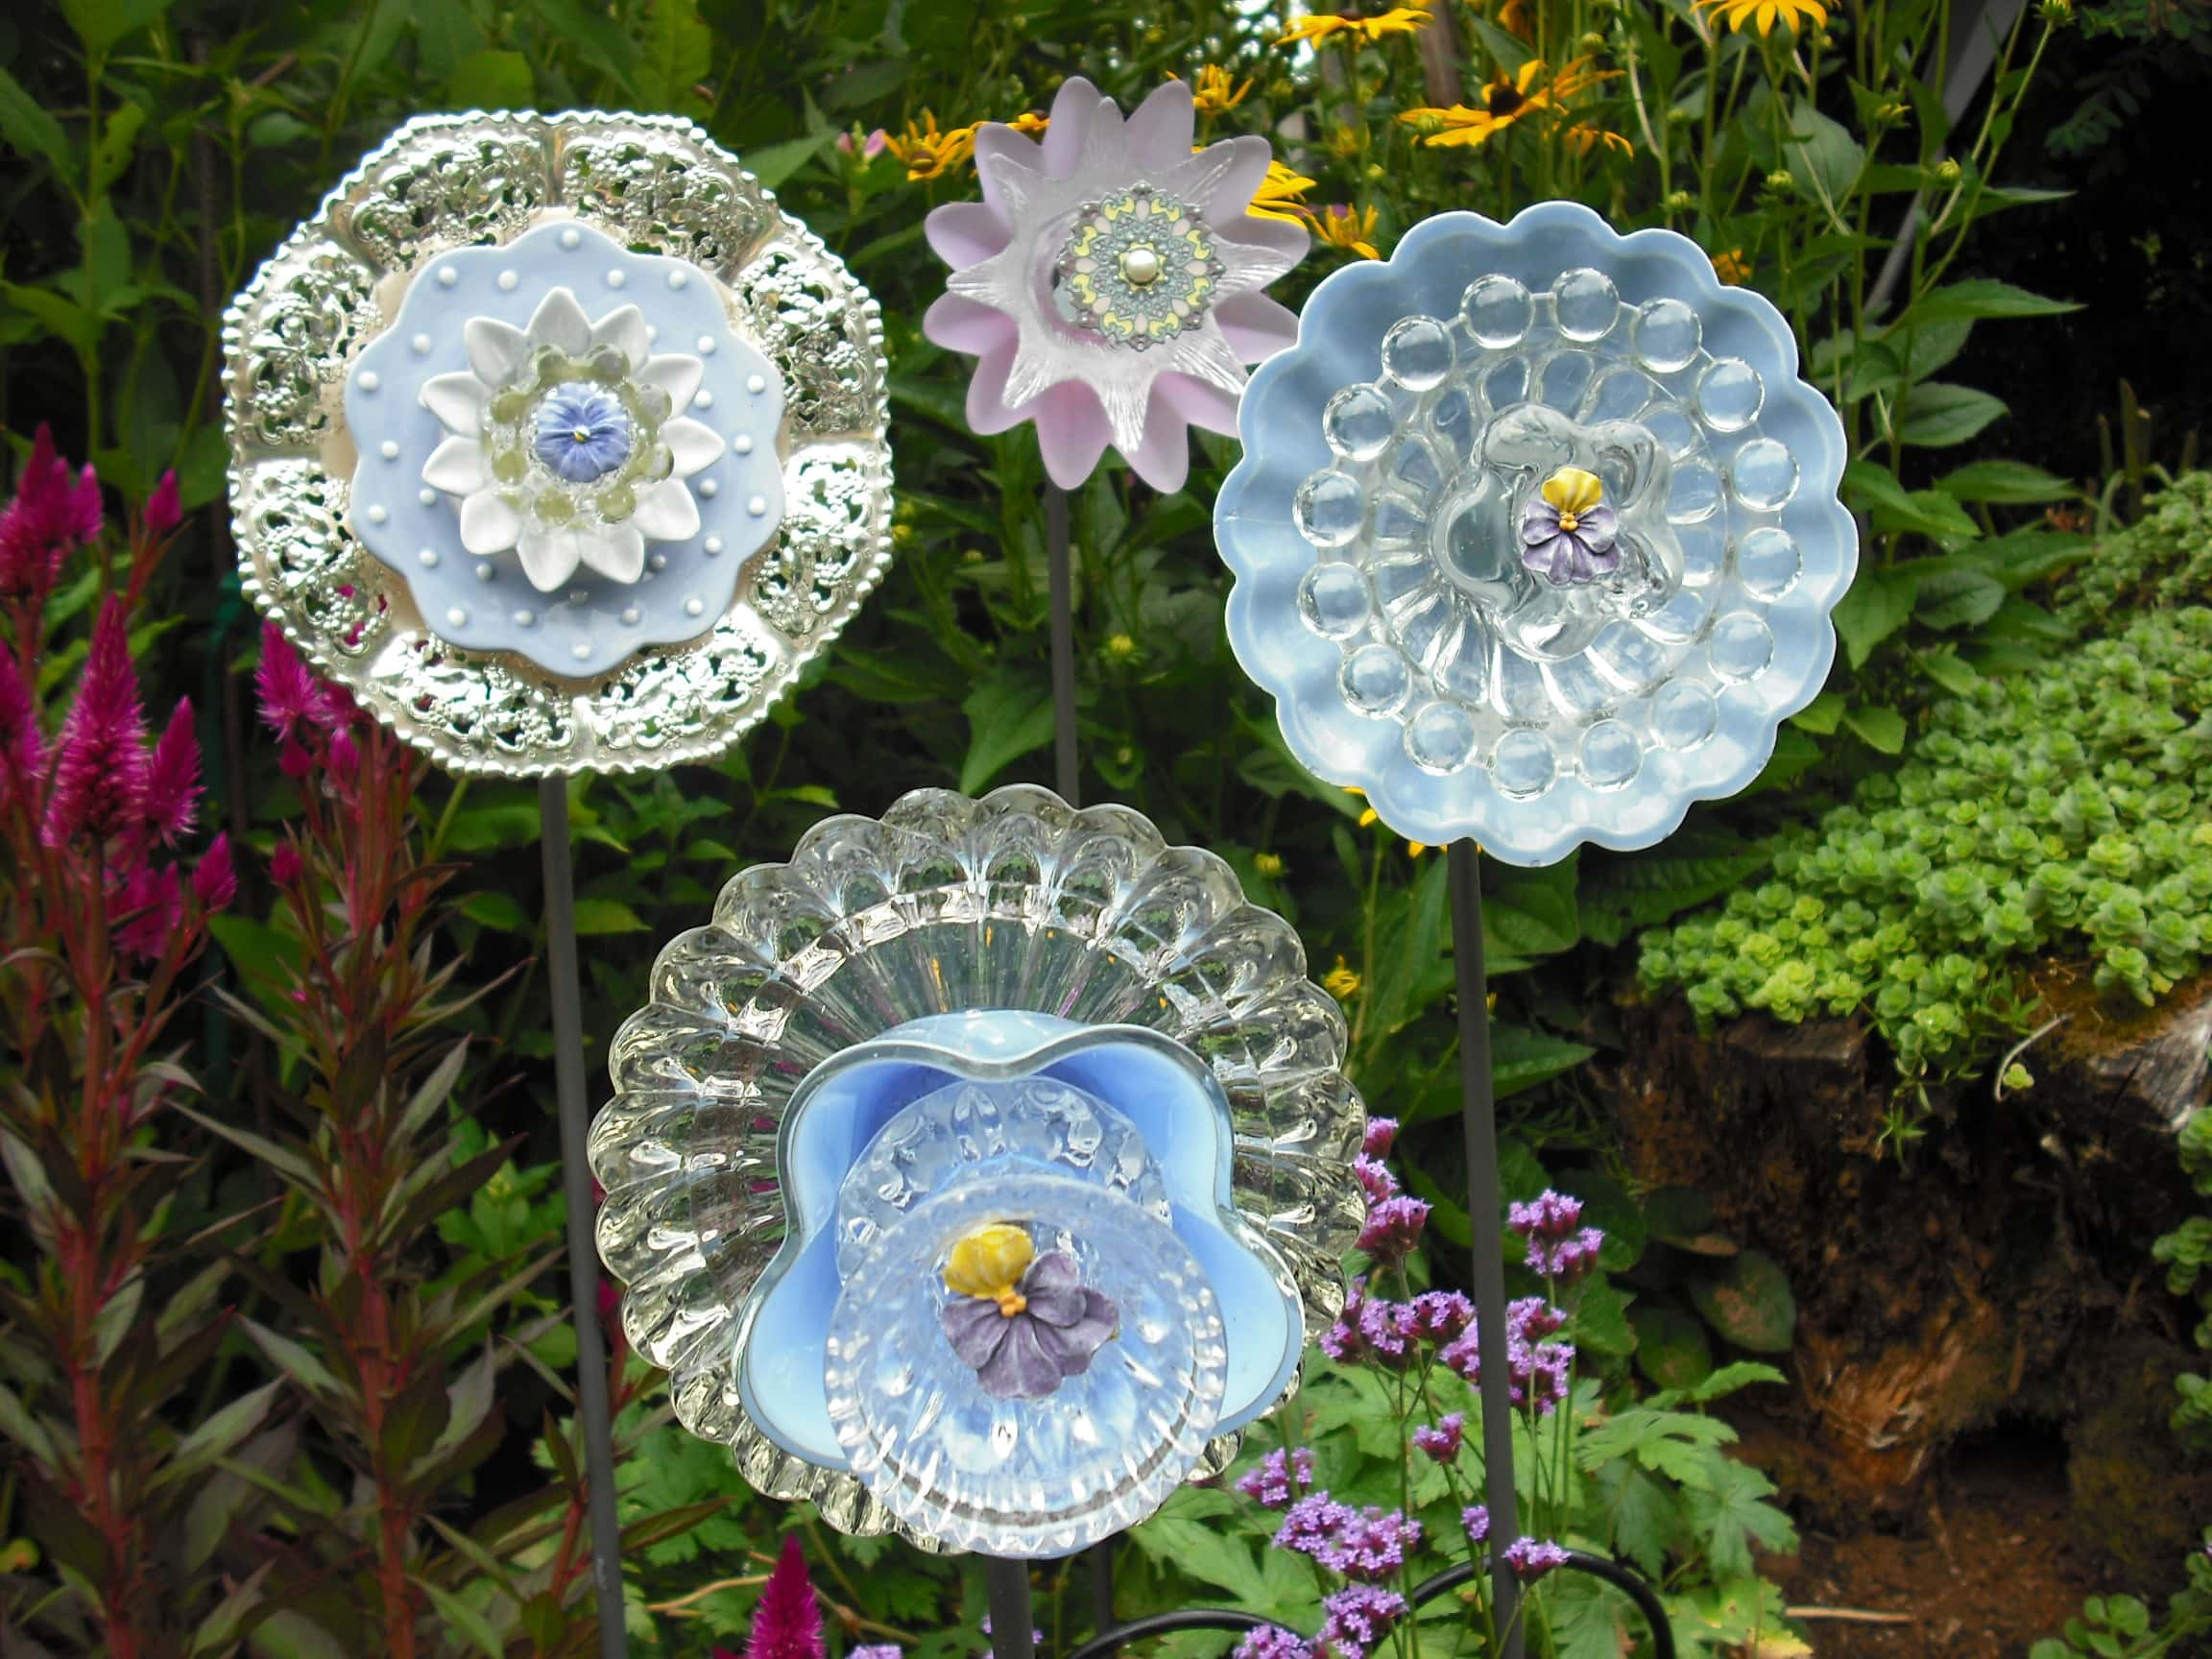 Using Recycled Glass To Make Flowers  DIY Glass Flowers  Thrifty NW Mom